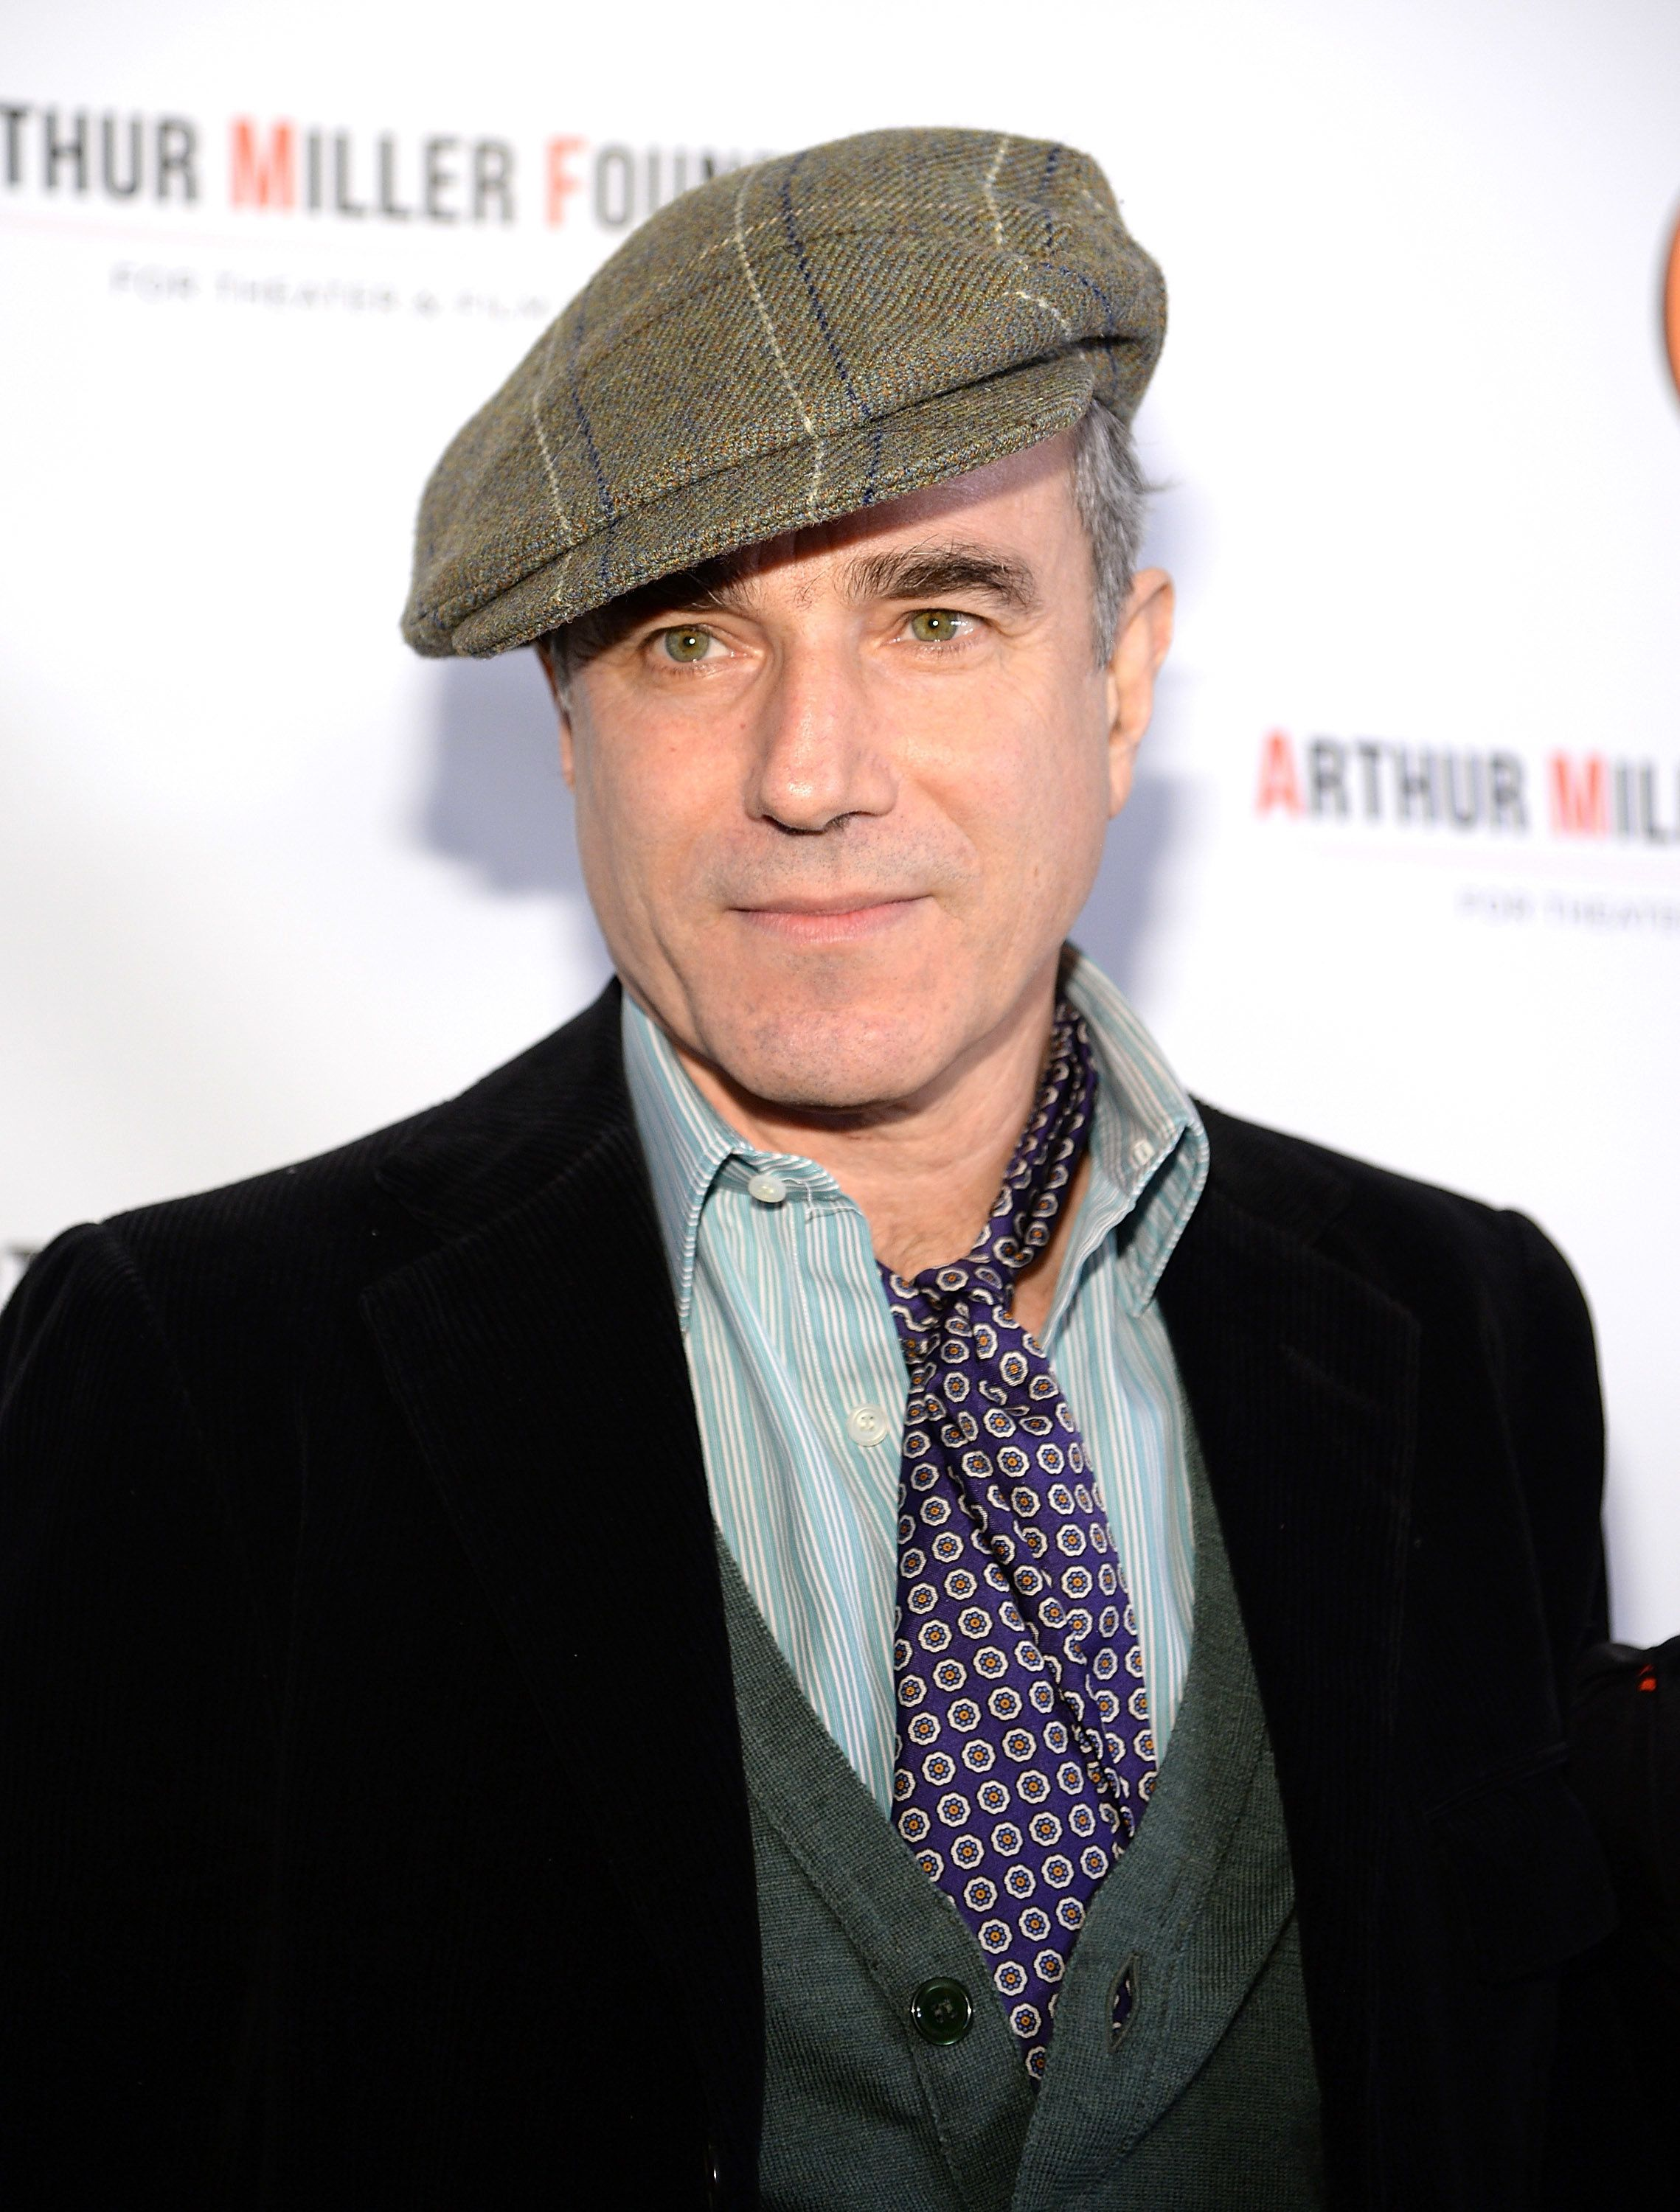 NEW YORK, NY - JANUARY 25:  Daniel Day-Lewis attends the Arthur Miller - One Night 100 Years Benefit at Lyceum Theatre on January 25, 2016 in New York City.  (Photo by Kevin Mazur/Getty Images)